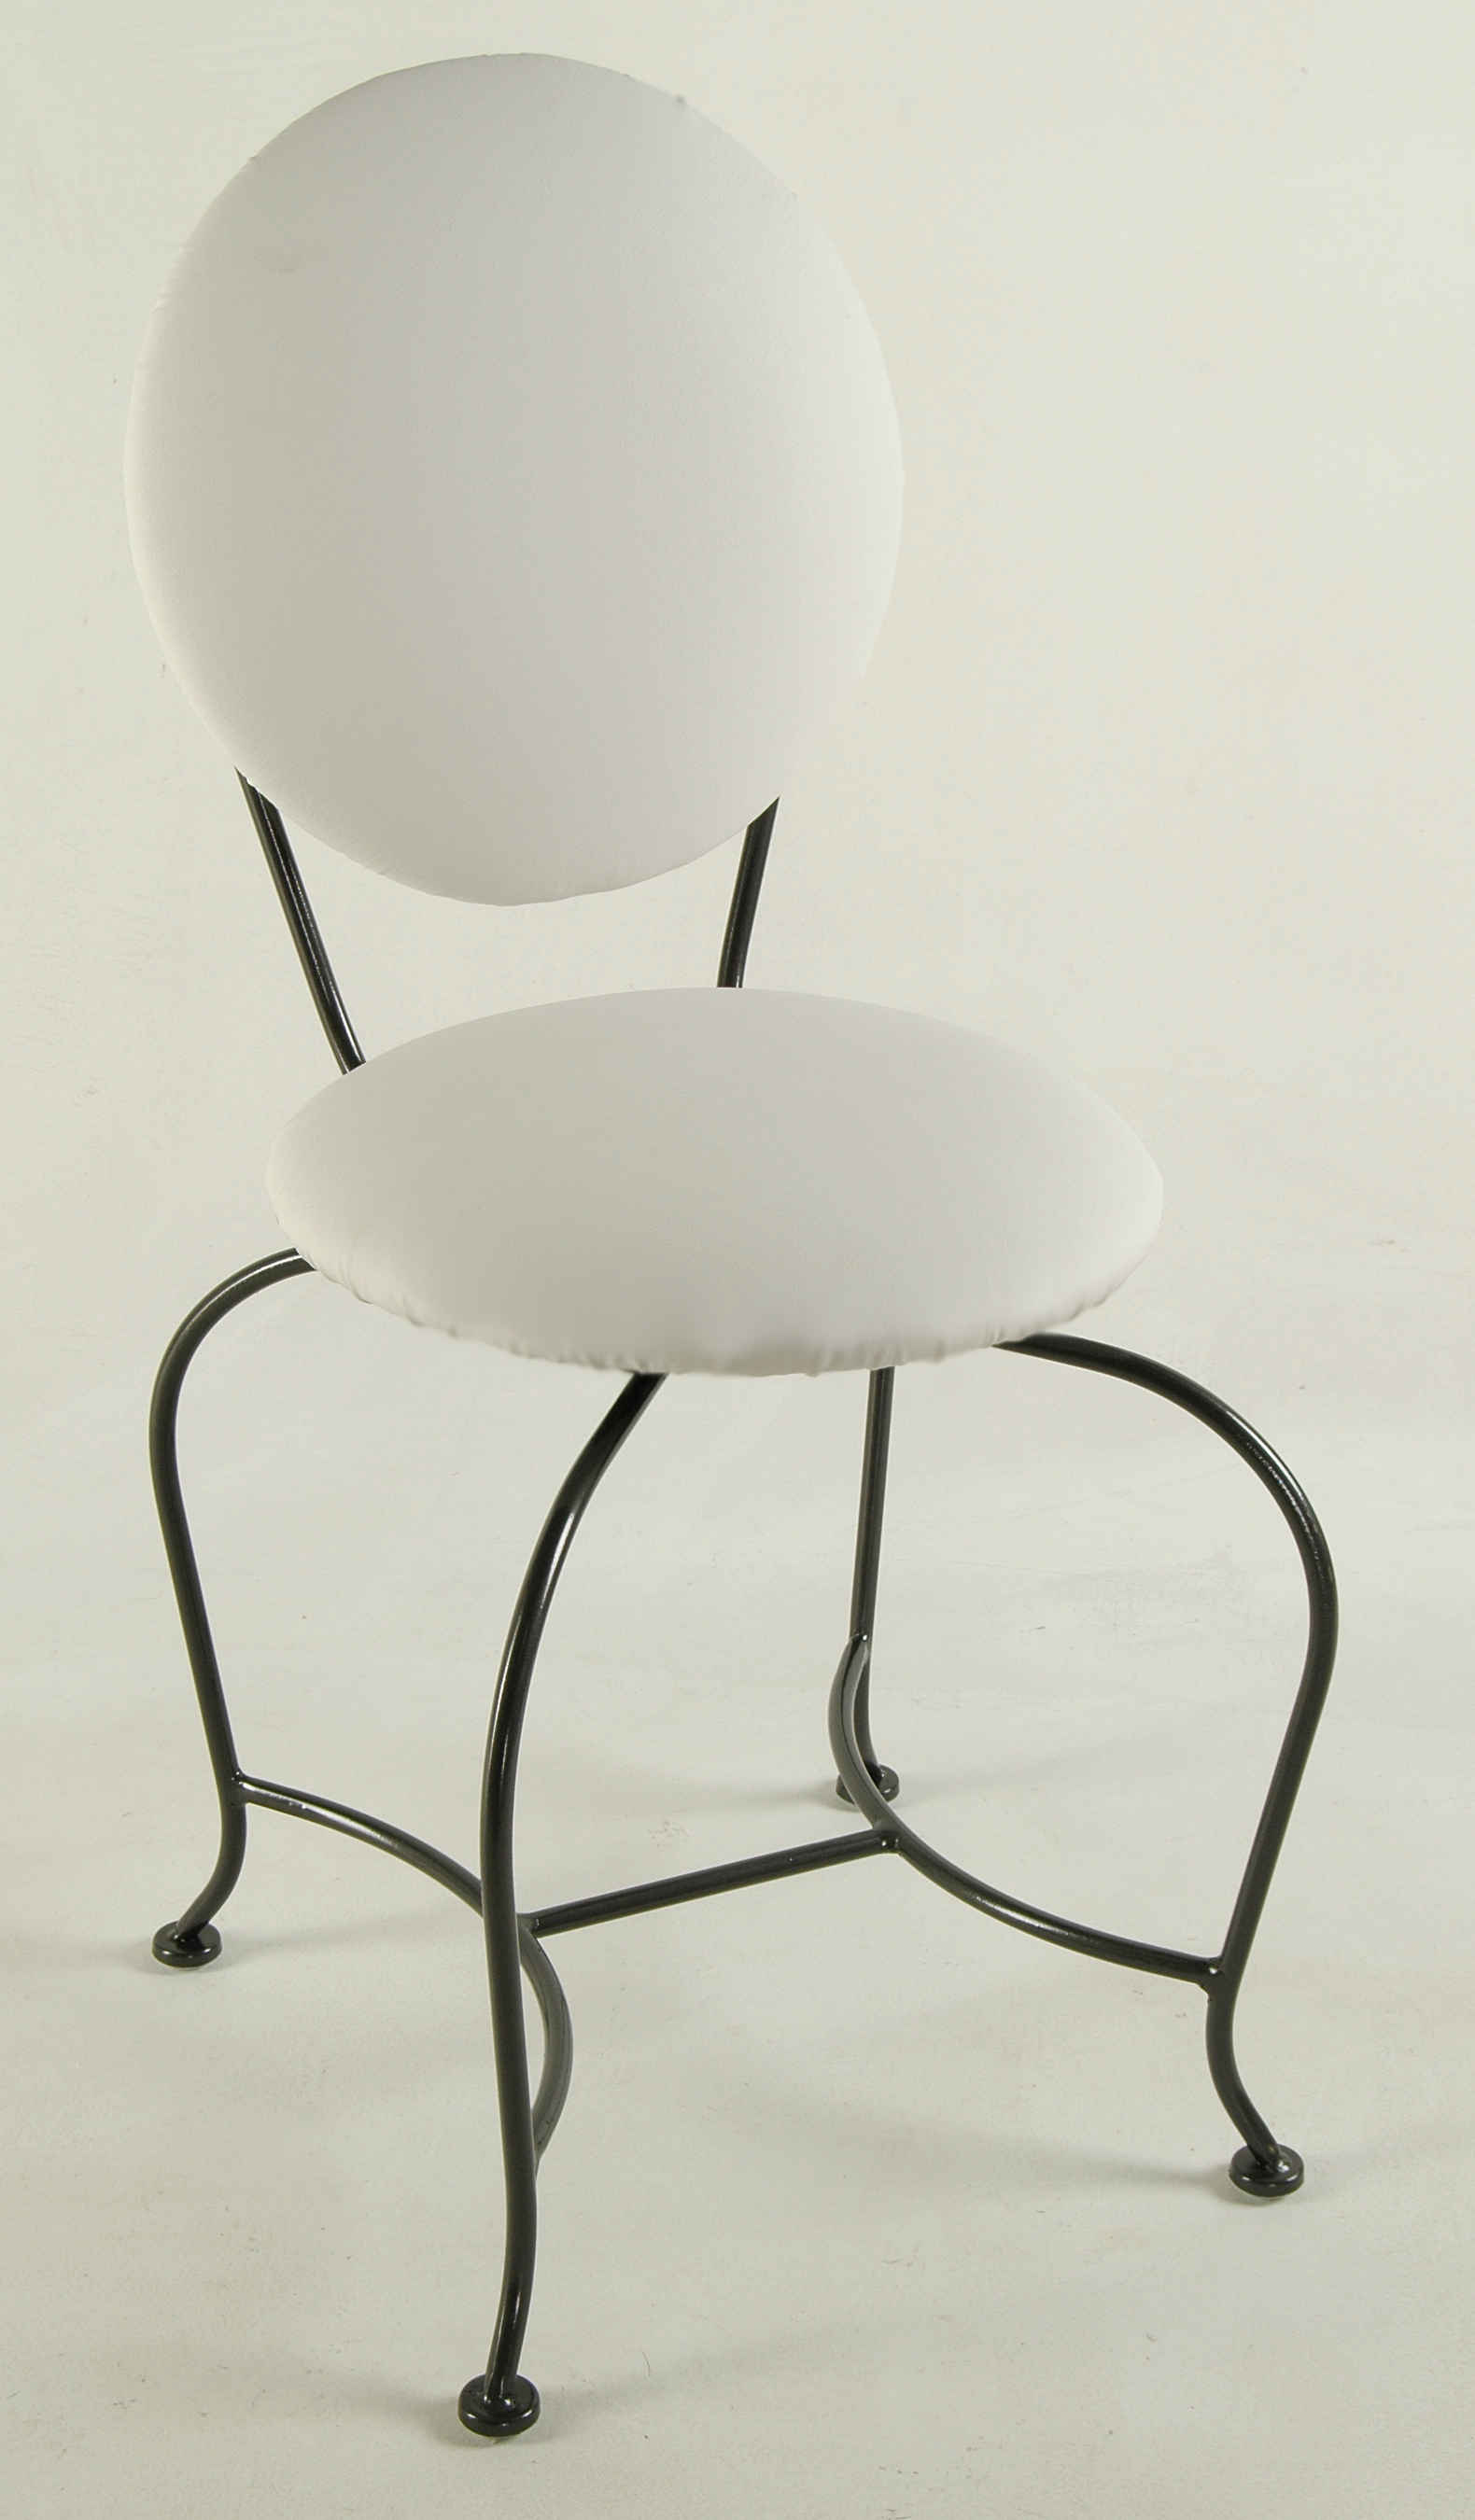 Stupendous Vanity Stool Wrought Iron Andrewgaddart Wooden Chair Designs For Living Room Andrewgaddartcom